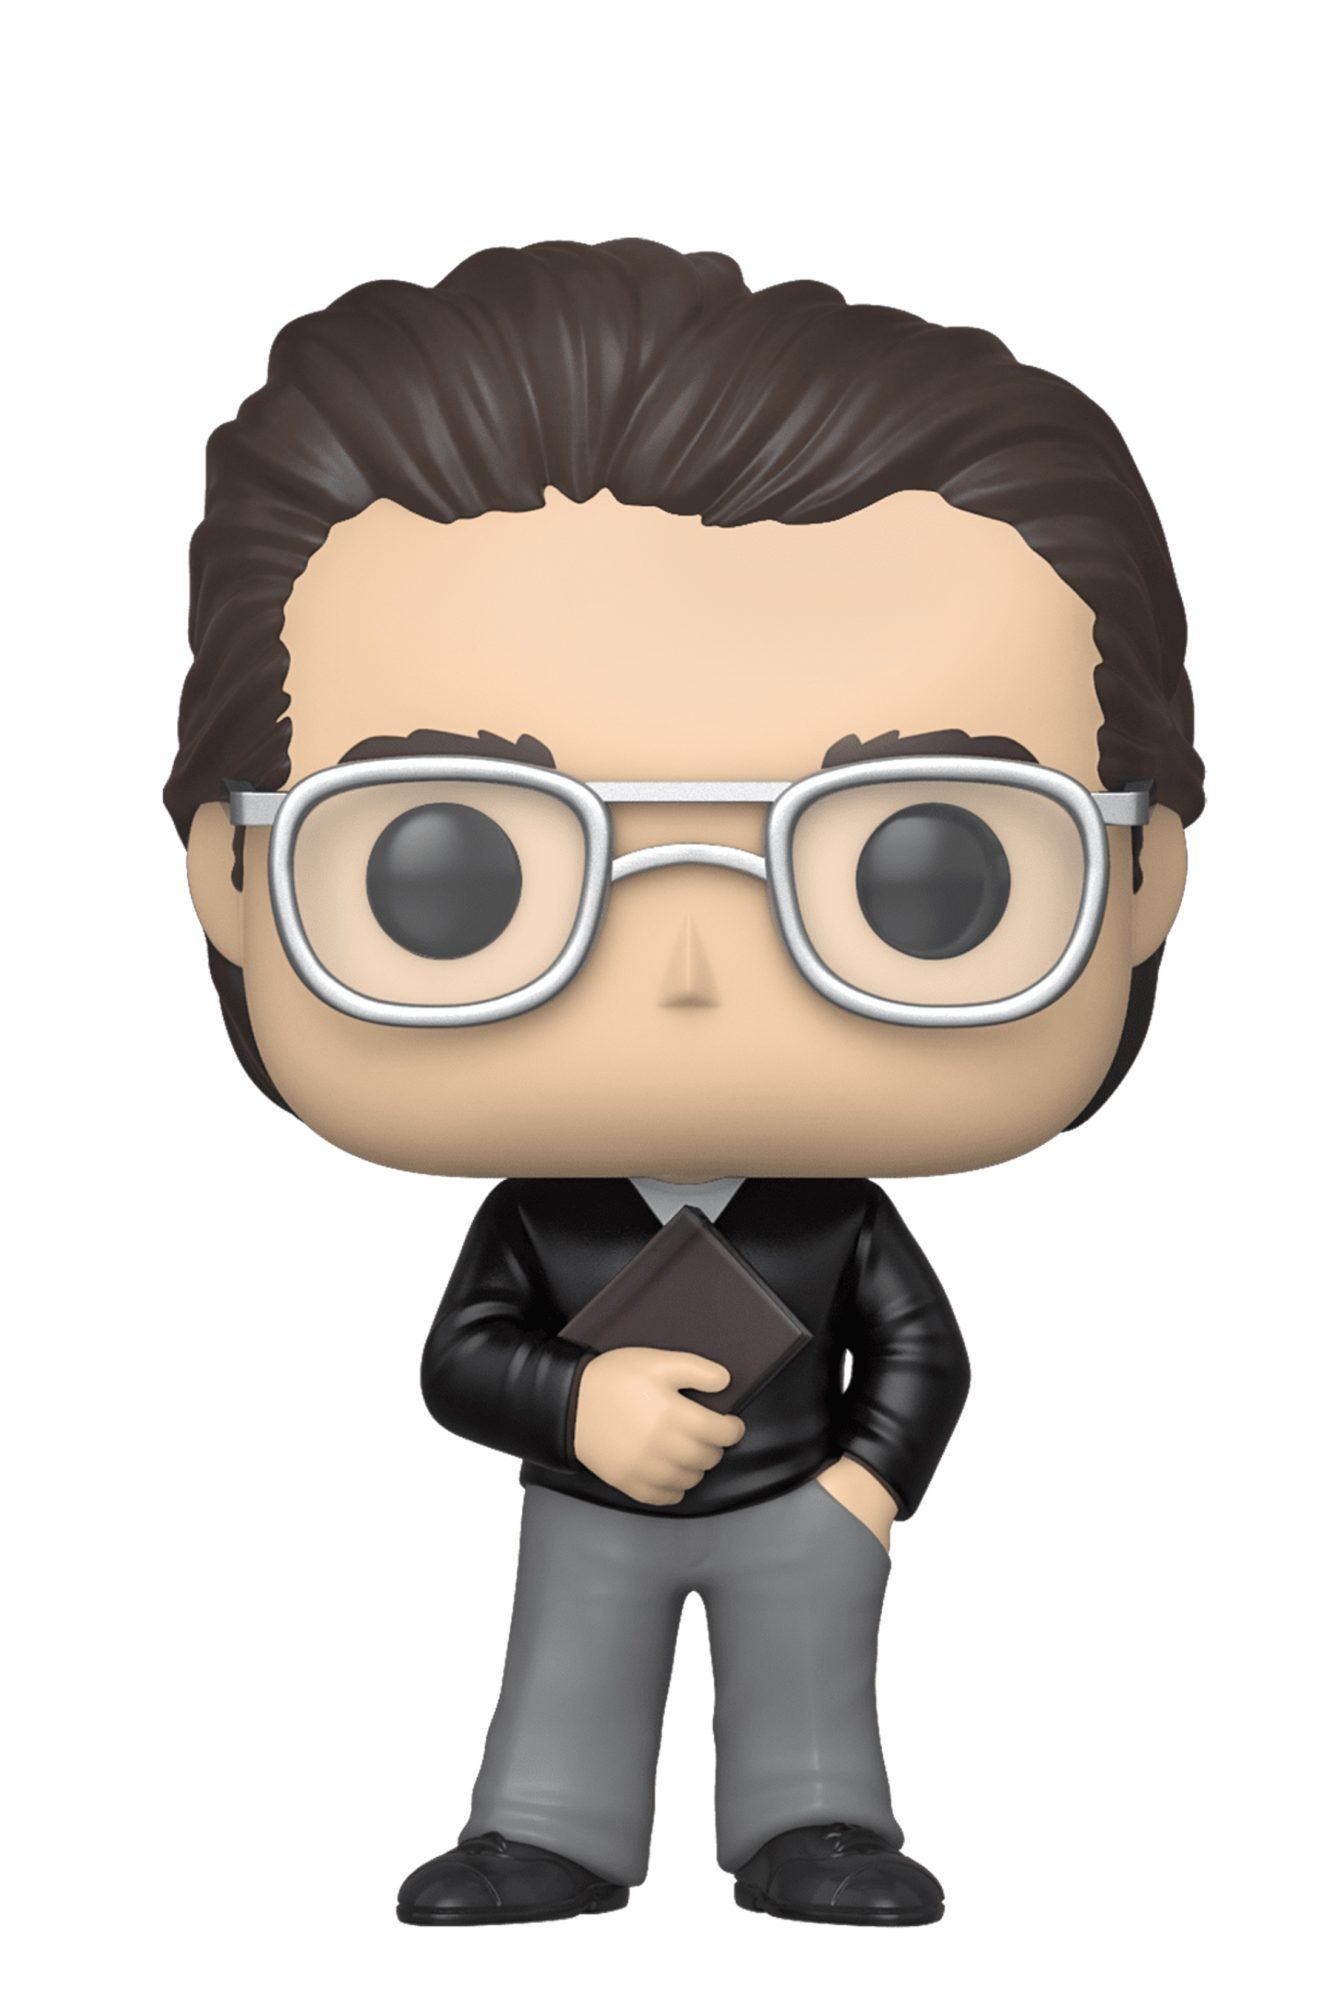 Stephen King's Funkos